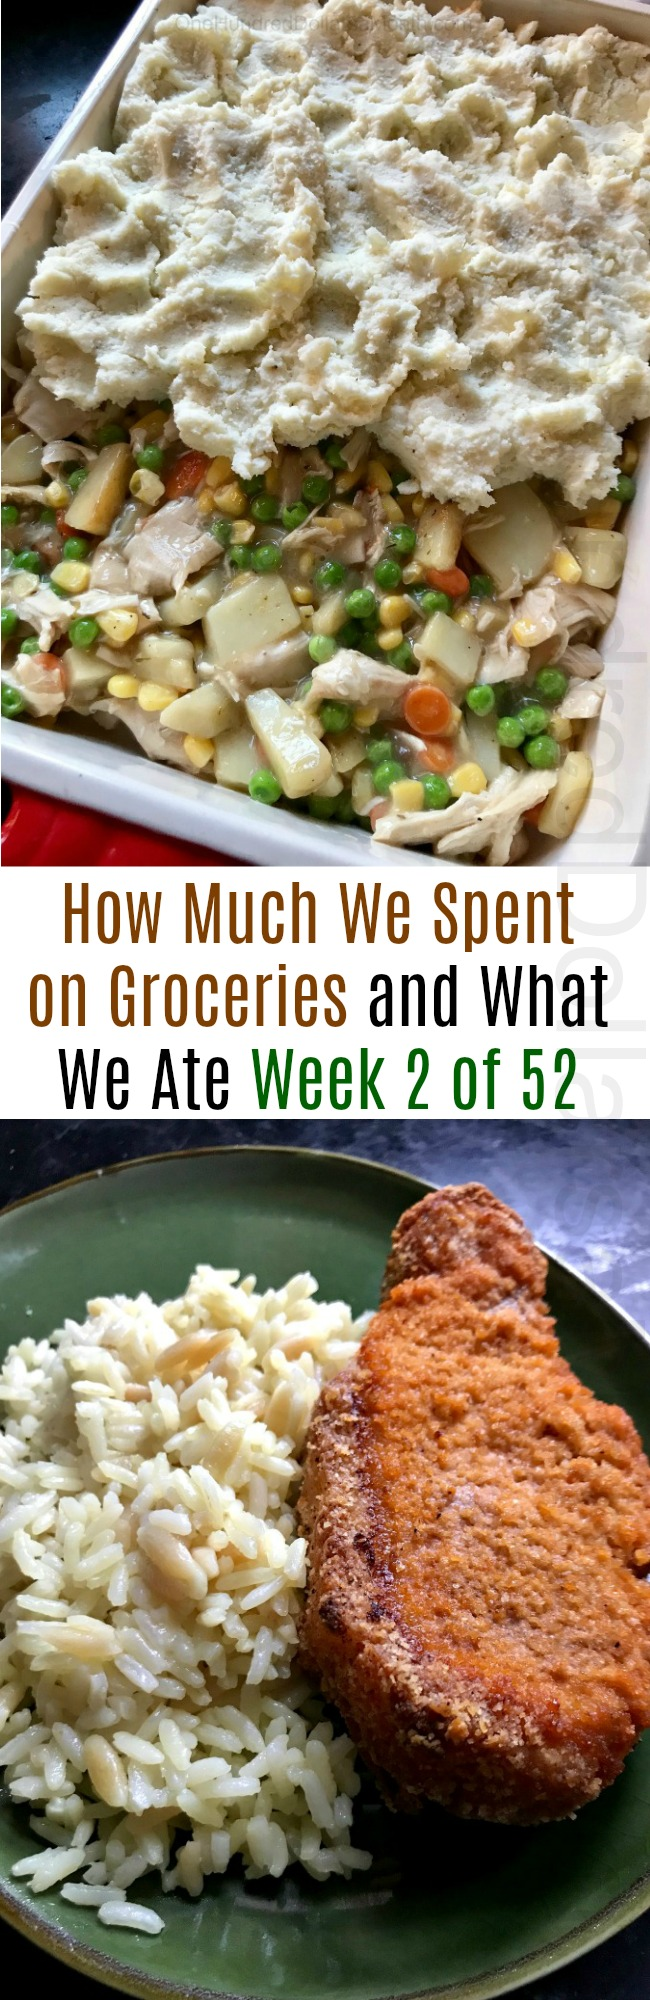 How Much We Spent on Groceries and What We Ate – Week 2 of 52